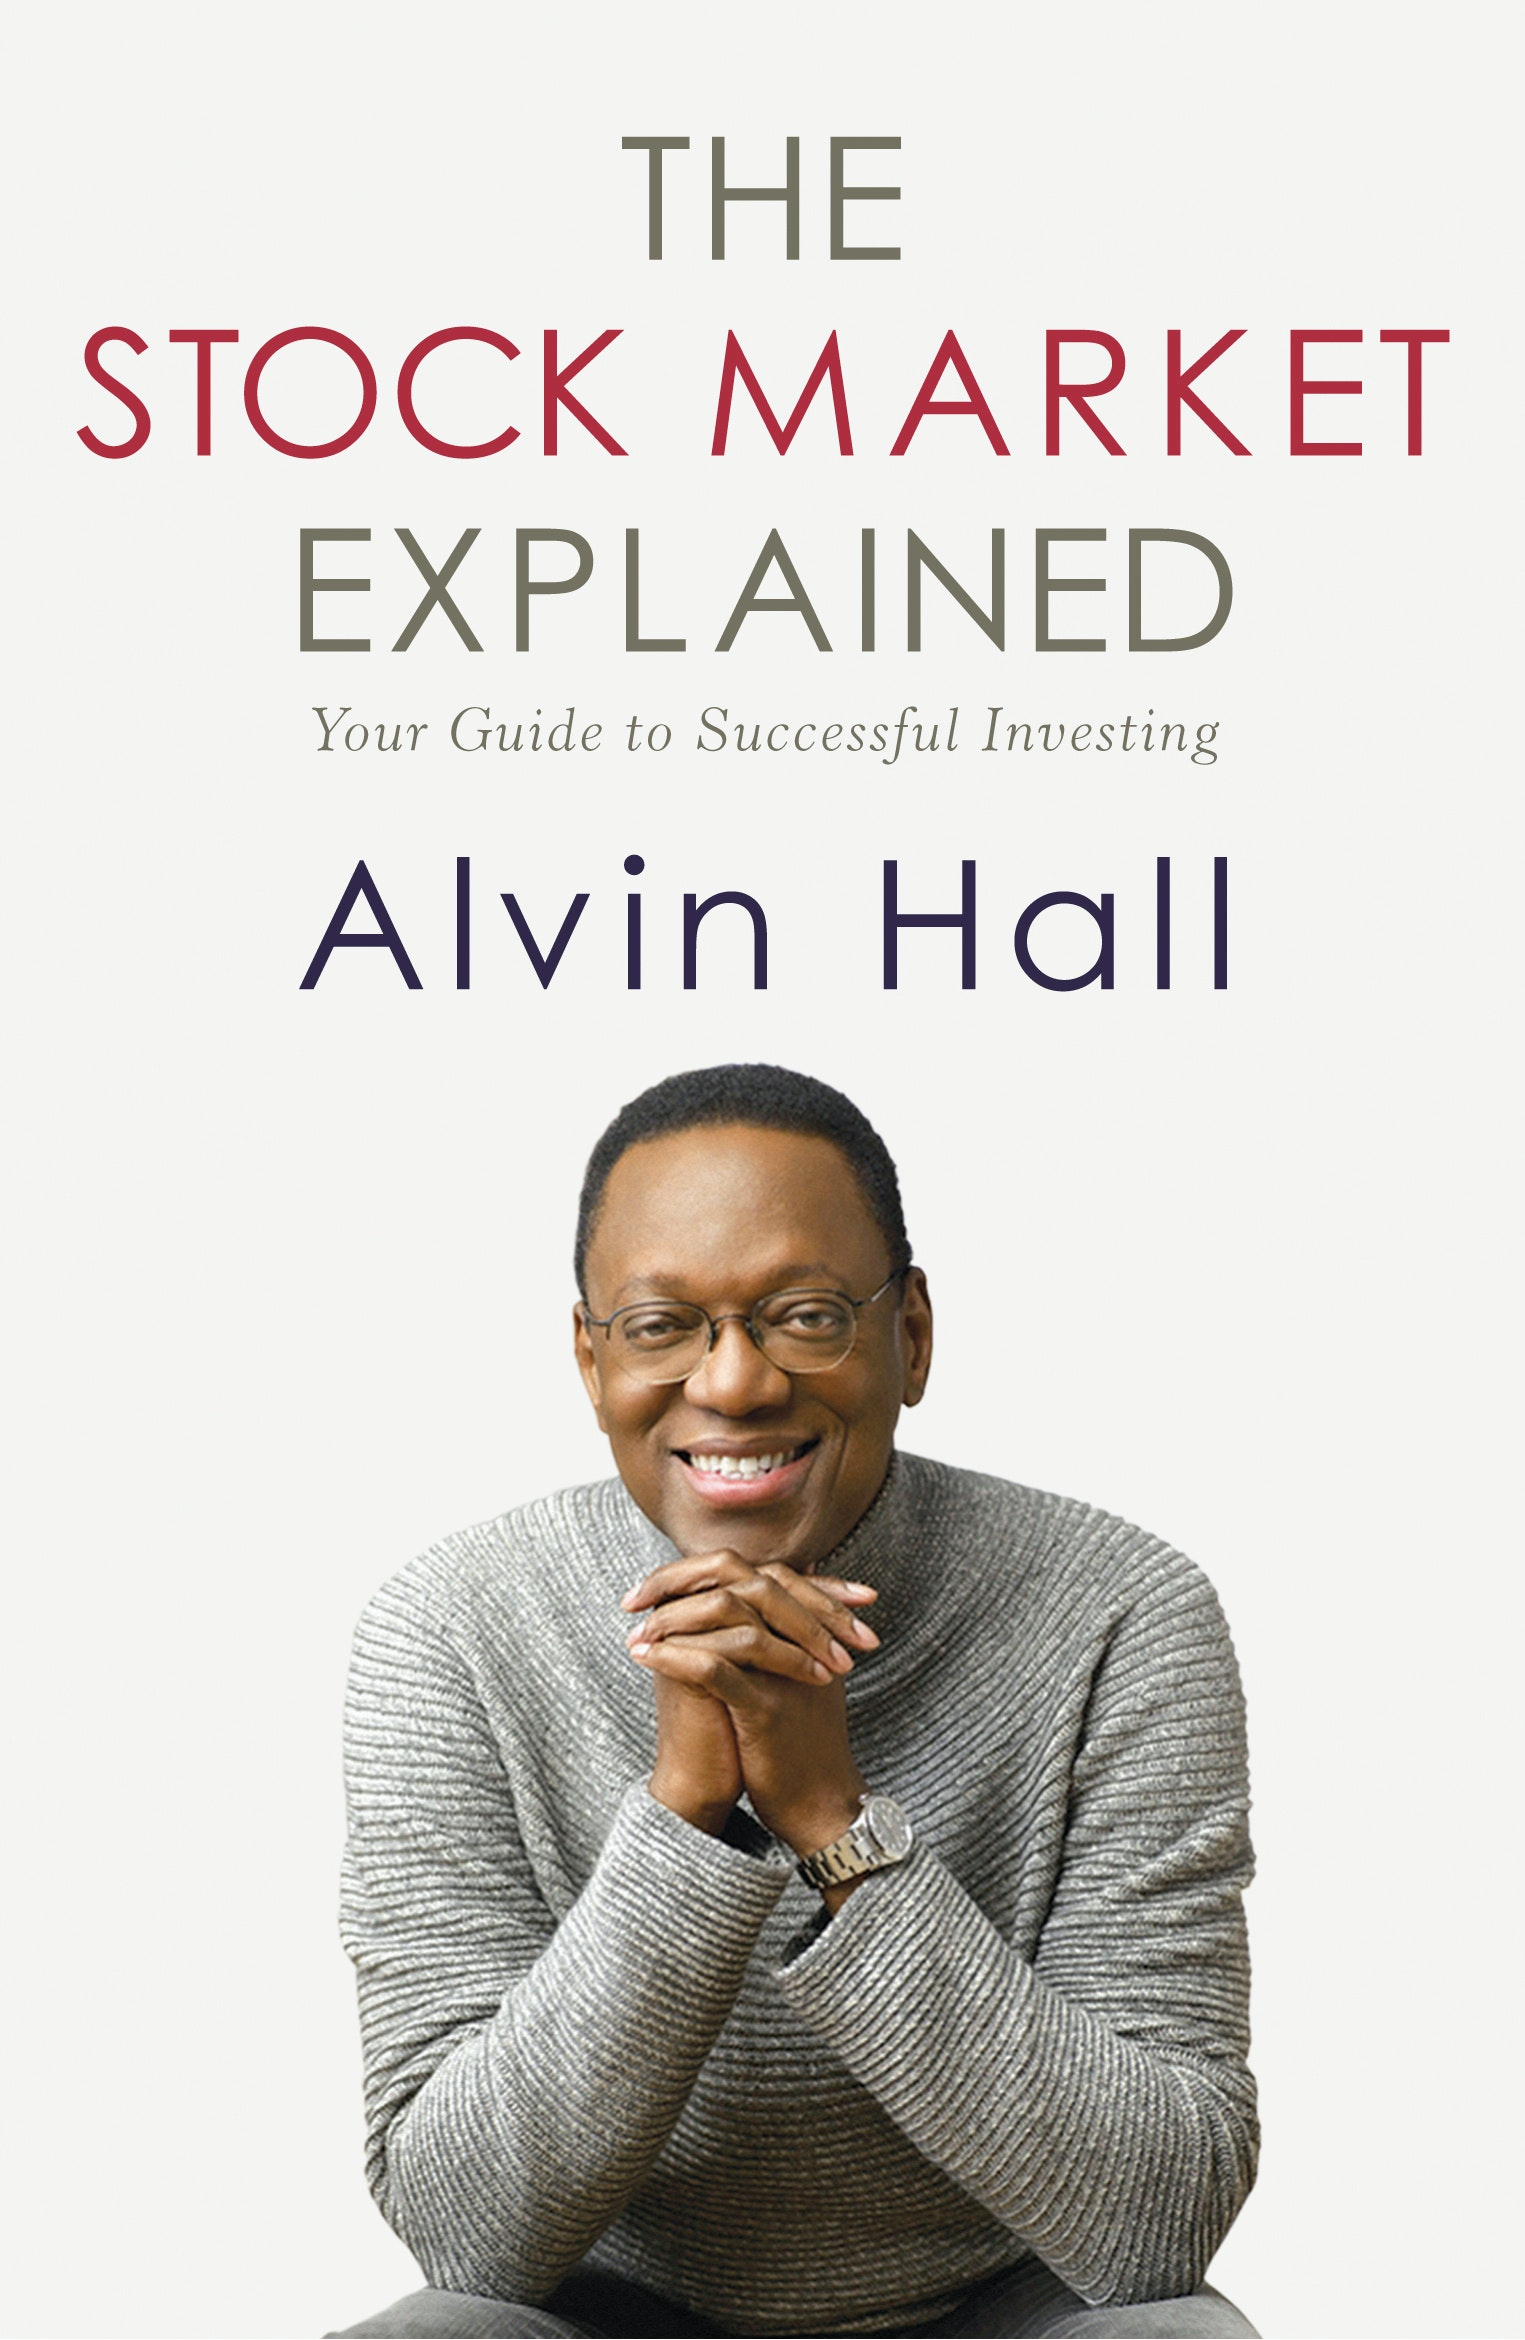 More Books by Alvin Hall